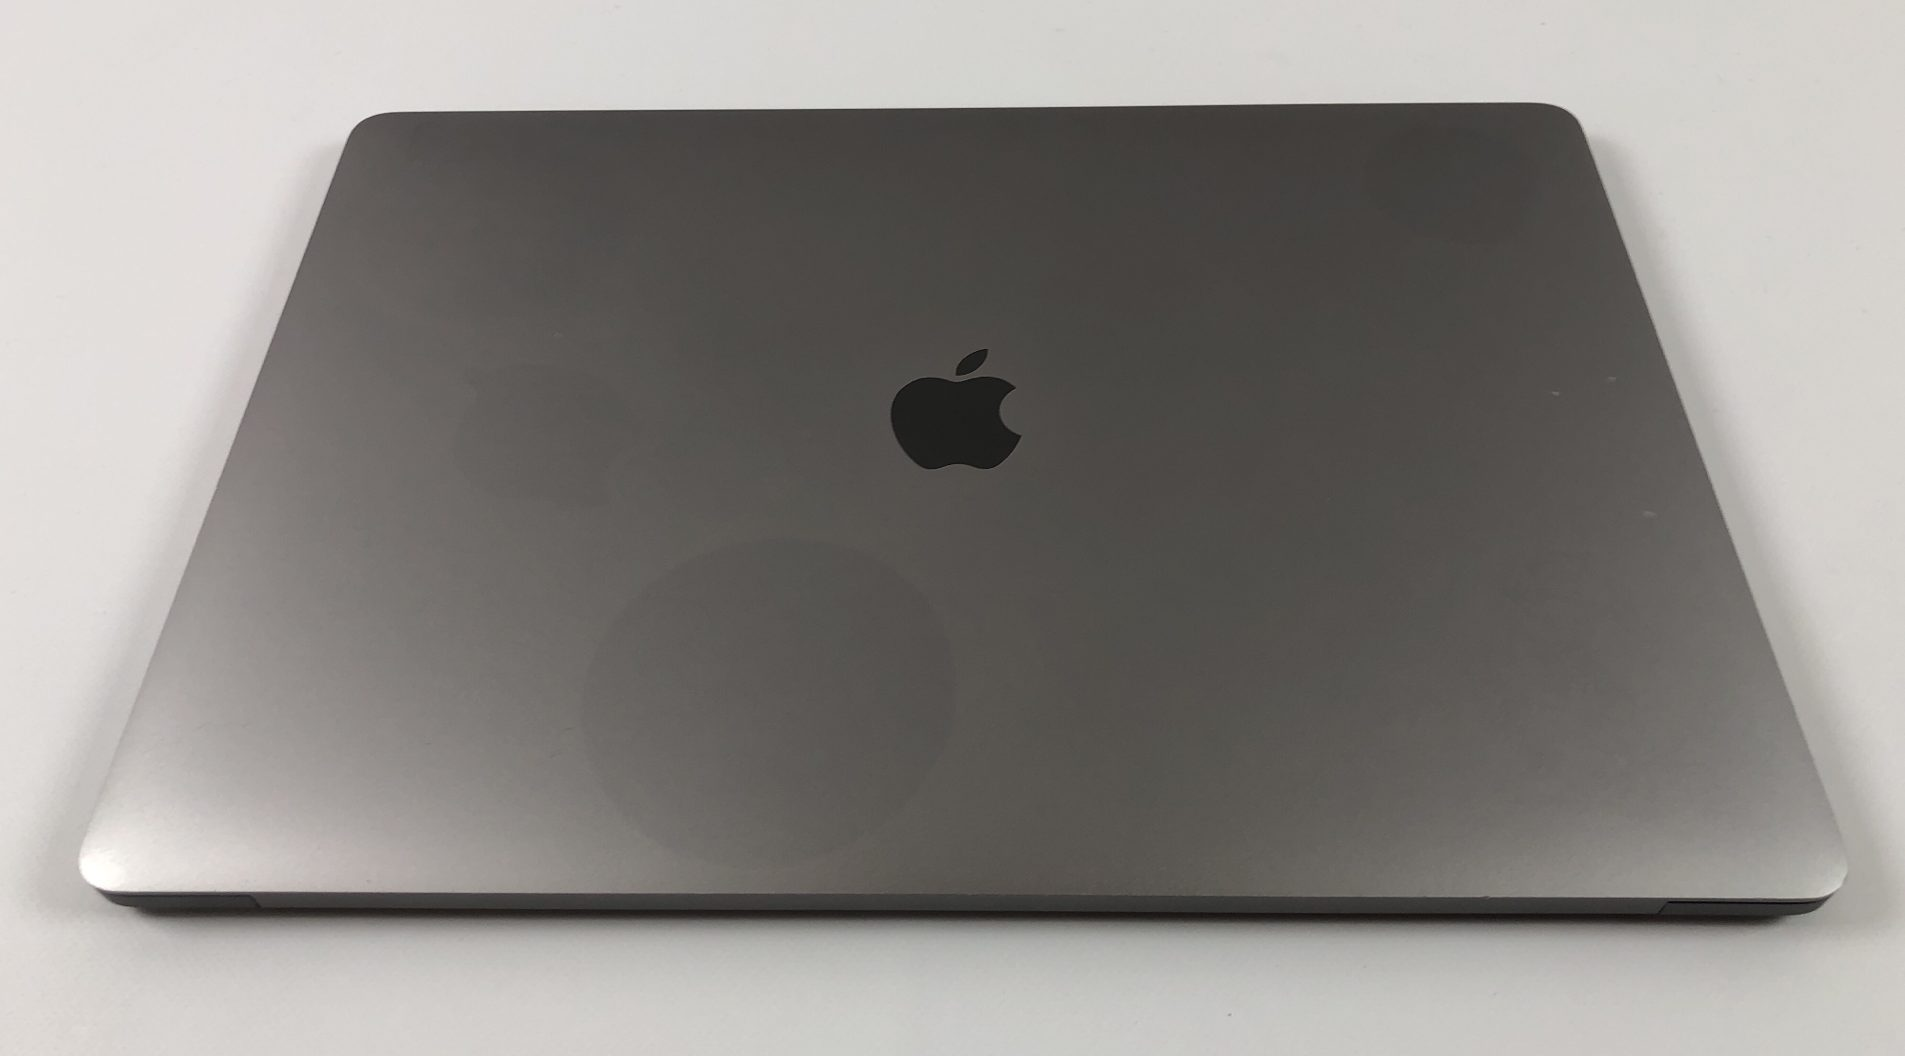 "MacBook Pro 15"" Touch Bar Late 2016 (Intel Quad-Core i7 2.7 GHz 16 GB RAM 512 GB SSD), Space Gray, Intel Quad-Core i7 2.7 GHz, 16 GB RAM, 512 GB SSD, Kuva 2"